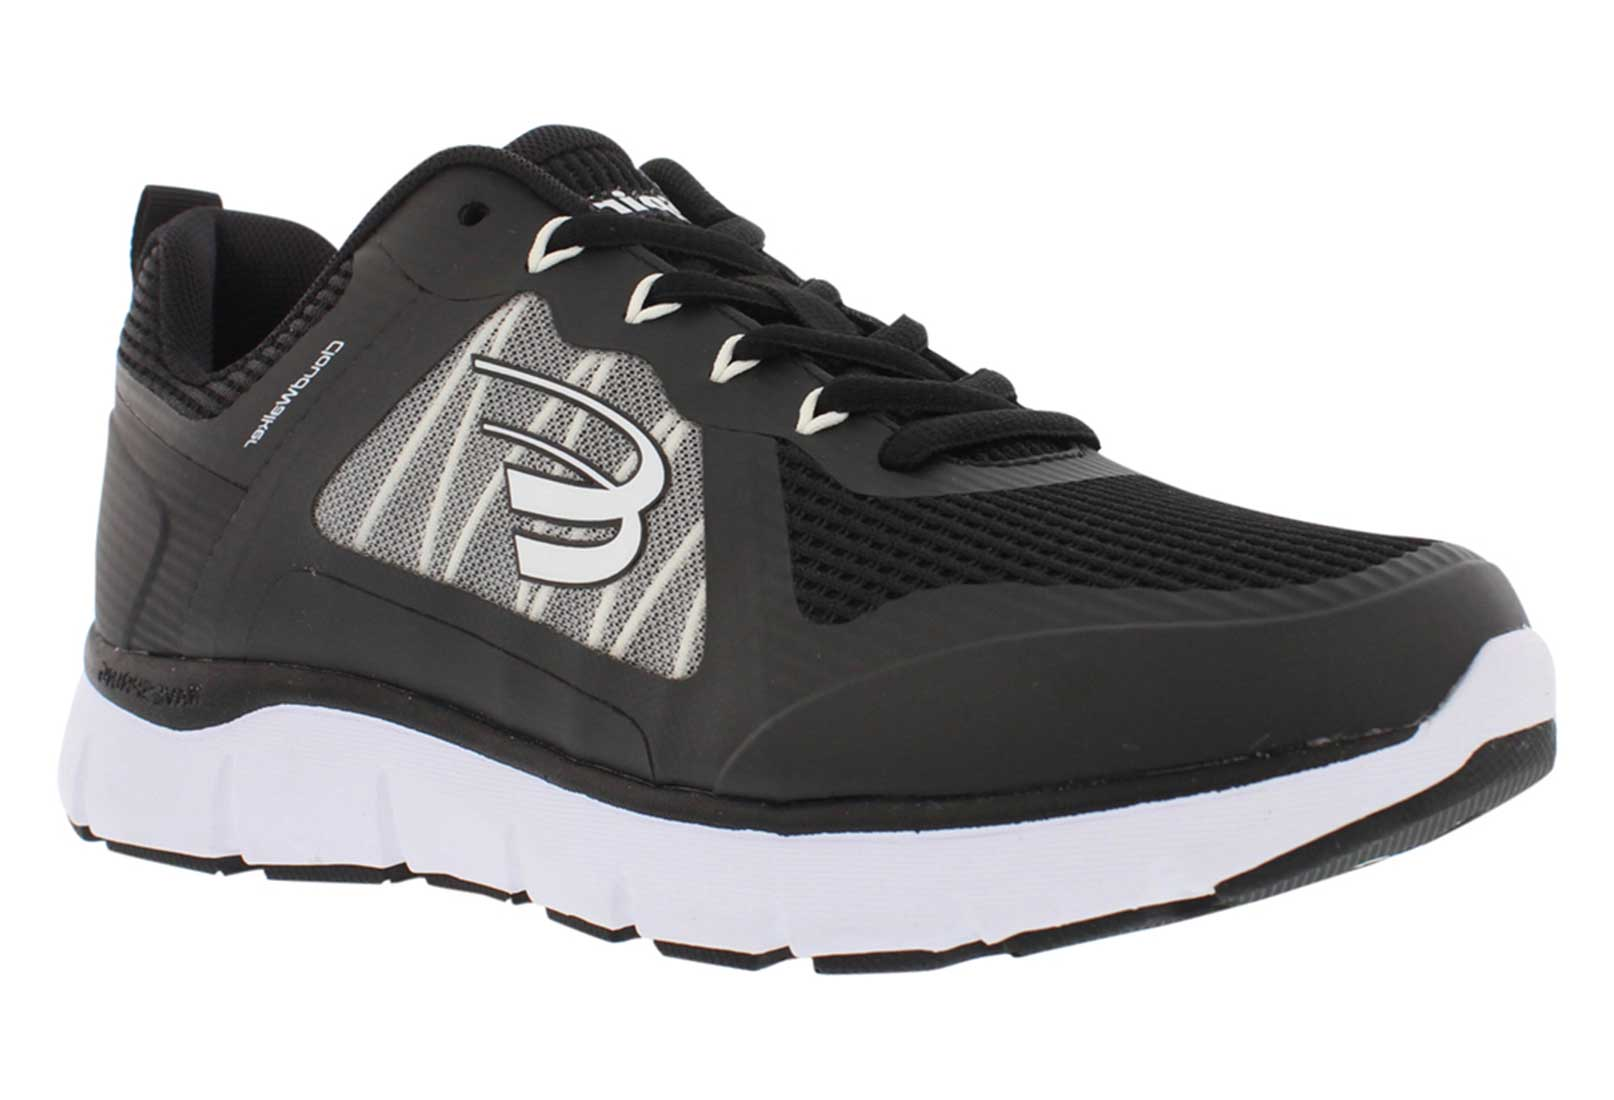 Spira Footwear - Women's CloudWalker Walking Shoe